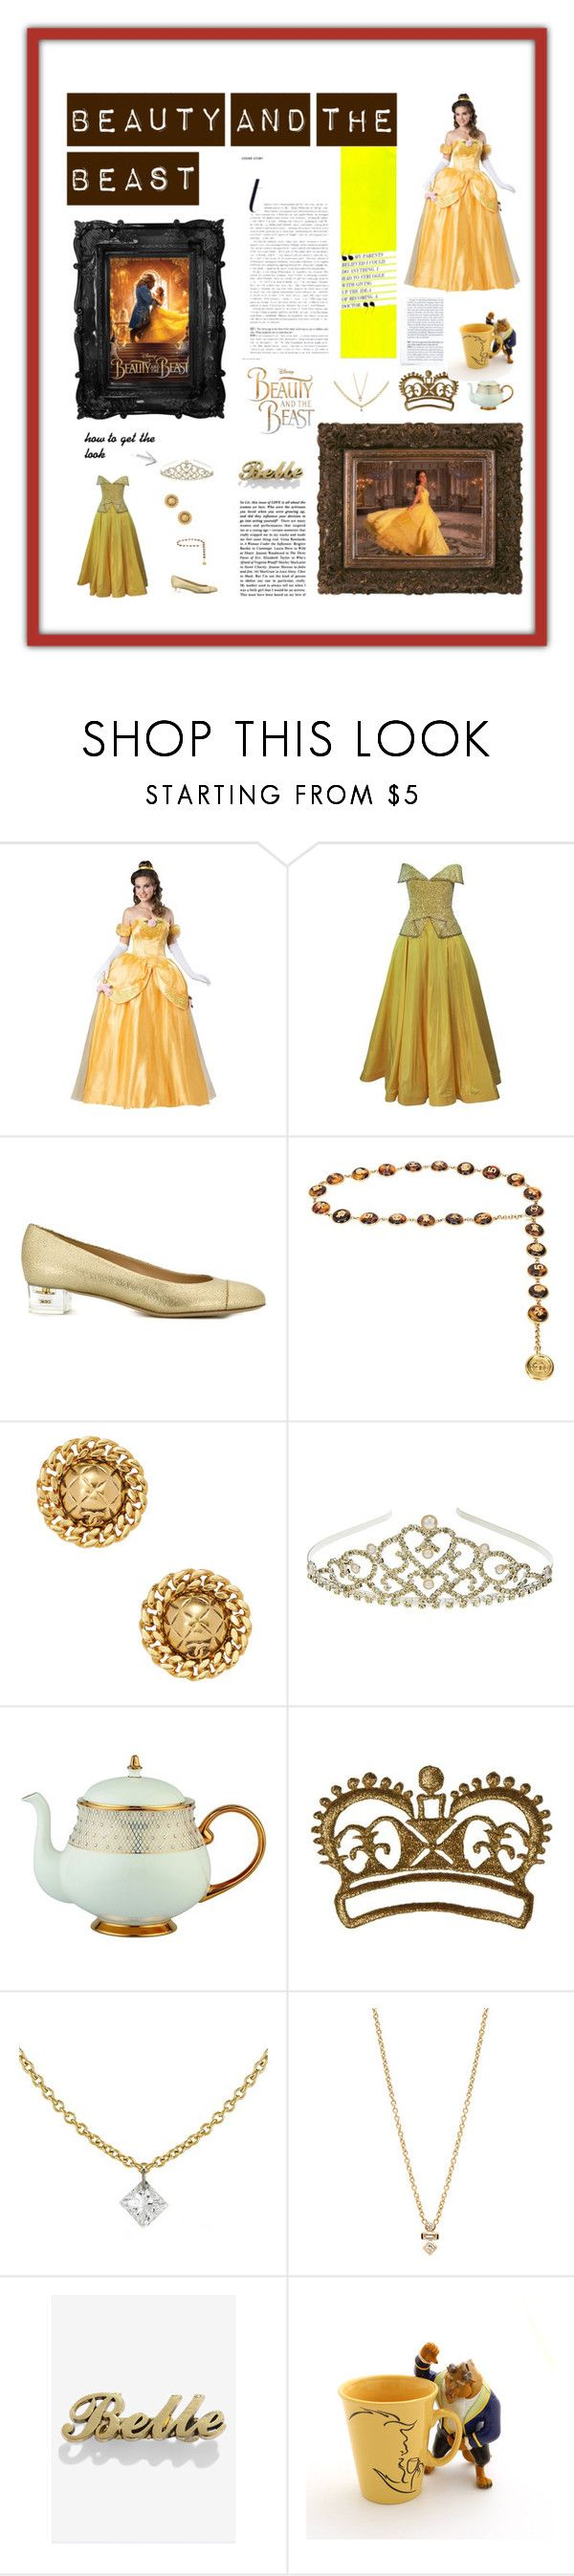 """""""My Stylying spree #BeautyandtheBeast  #contestentry"""" by preet310 ❤ liked on Polyvore featuring Disney, Murray Arbeid, Chanel, Monsoon, Prouna, ZoÃ« Chicco and vintage"""